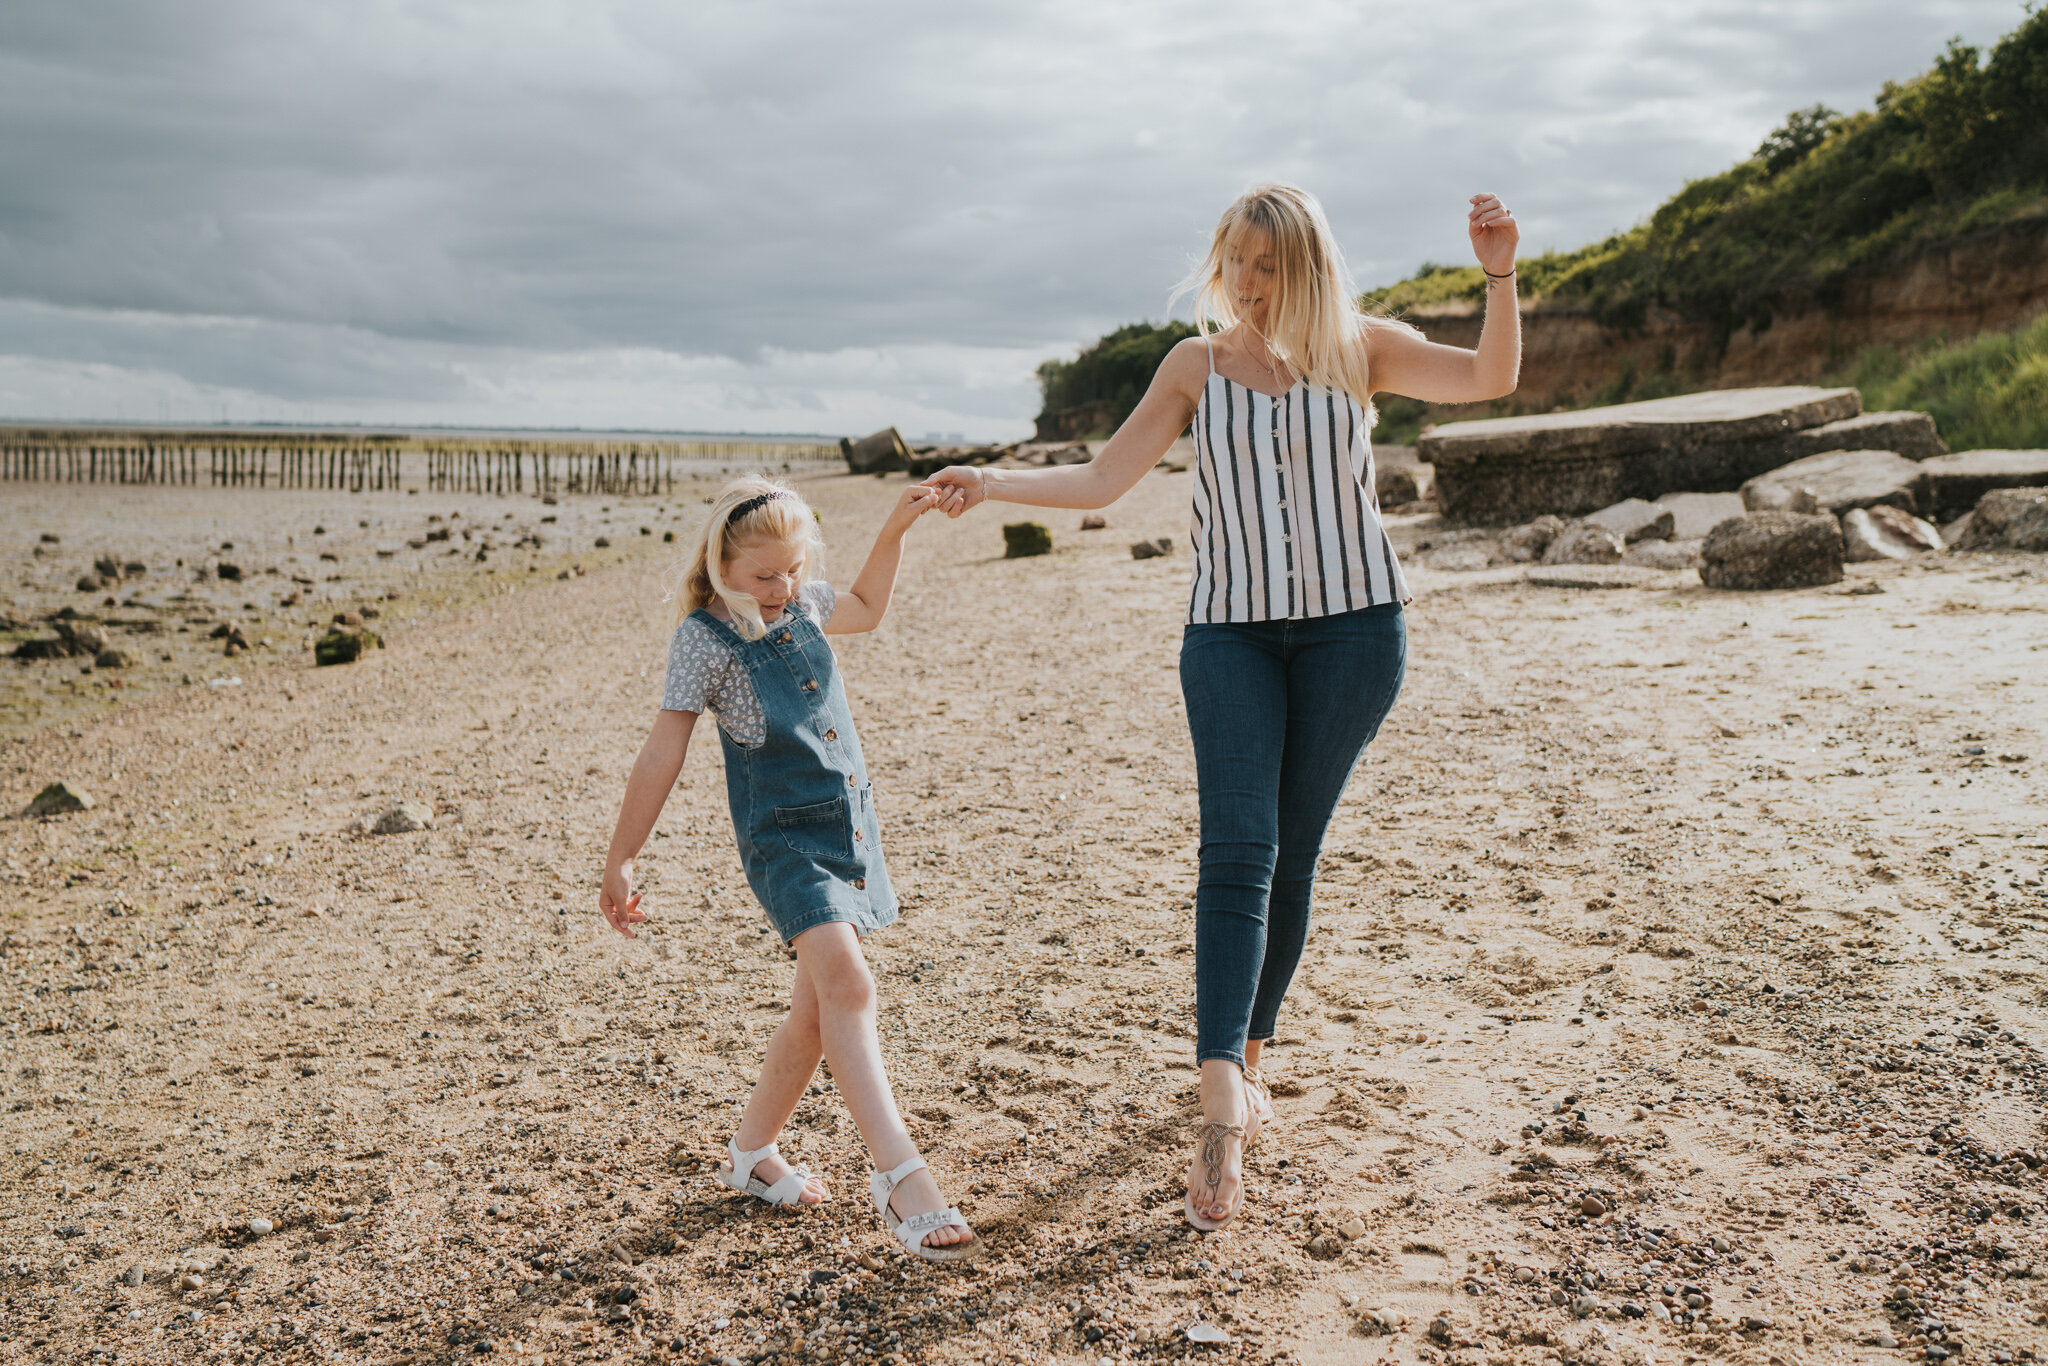 celebratory-beach-family-session-thomson-family-cudmore-grove-east-mersea-grace-elizabeth-colchester-essex-devon-suffolk-and-norfolk-alternative-wedding-and-family-photographer (15 of 53).jpg